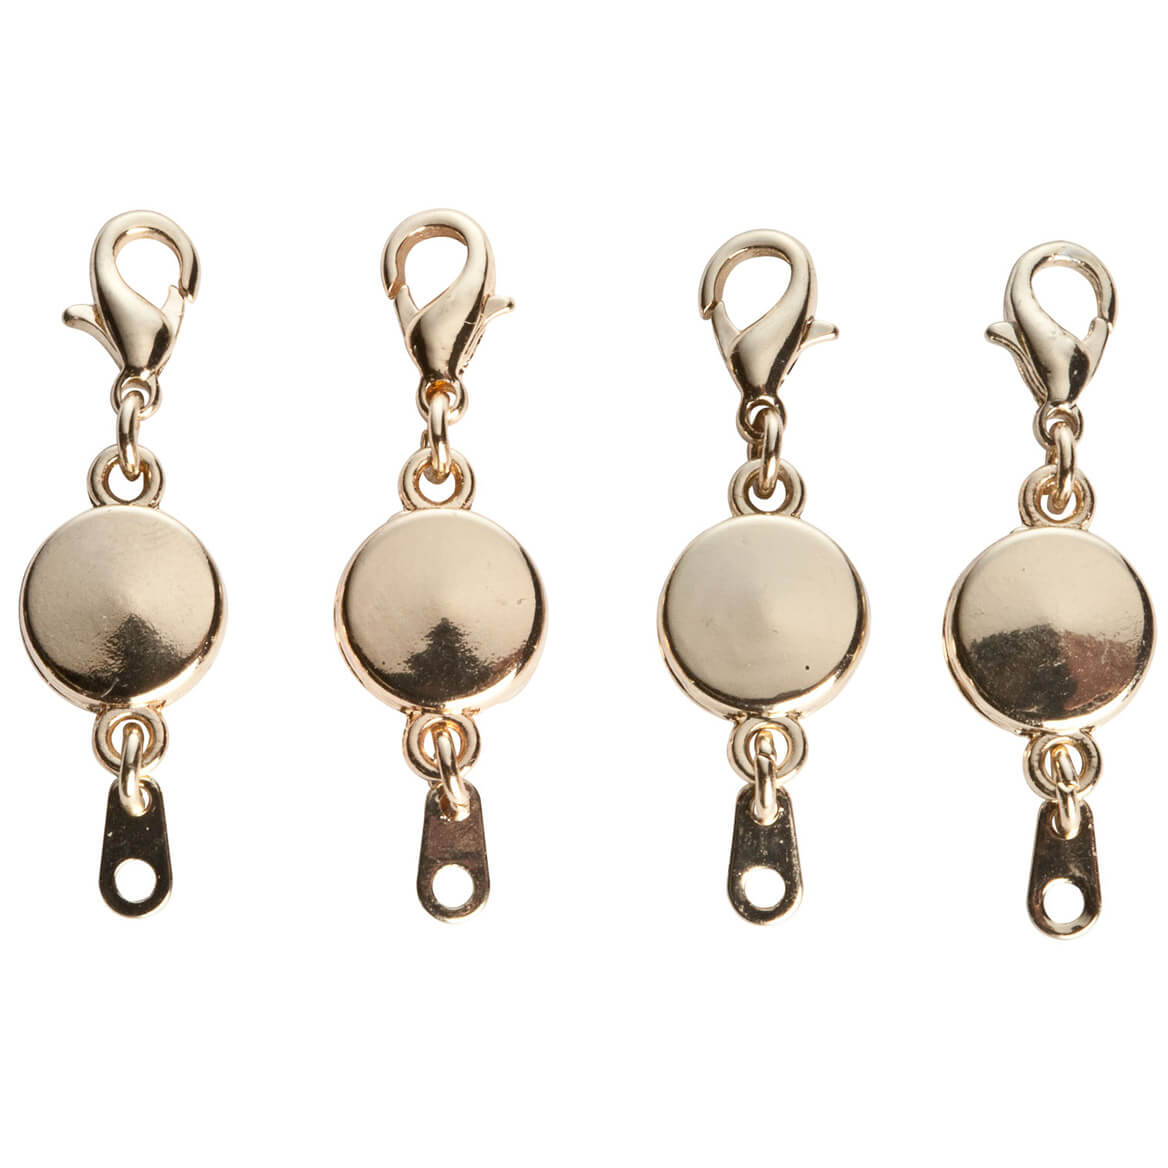 Locking Magnetic Jewelry Clasps, Set Of 4-337030